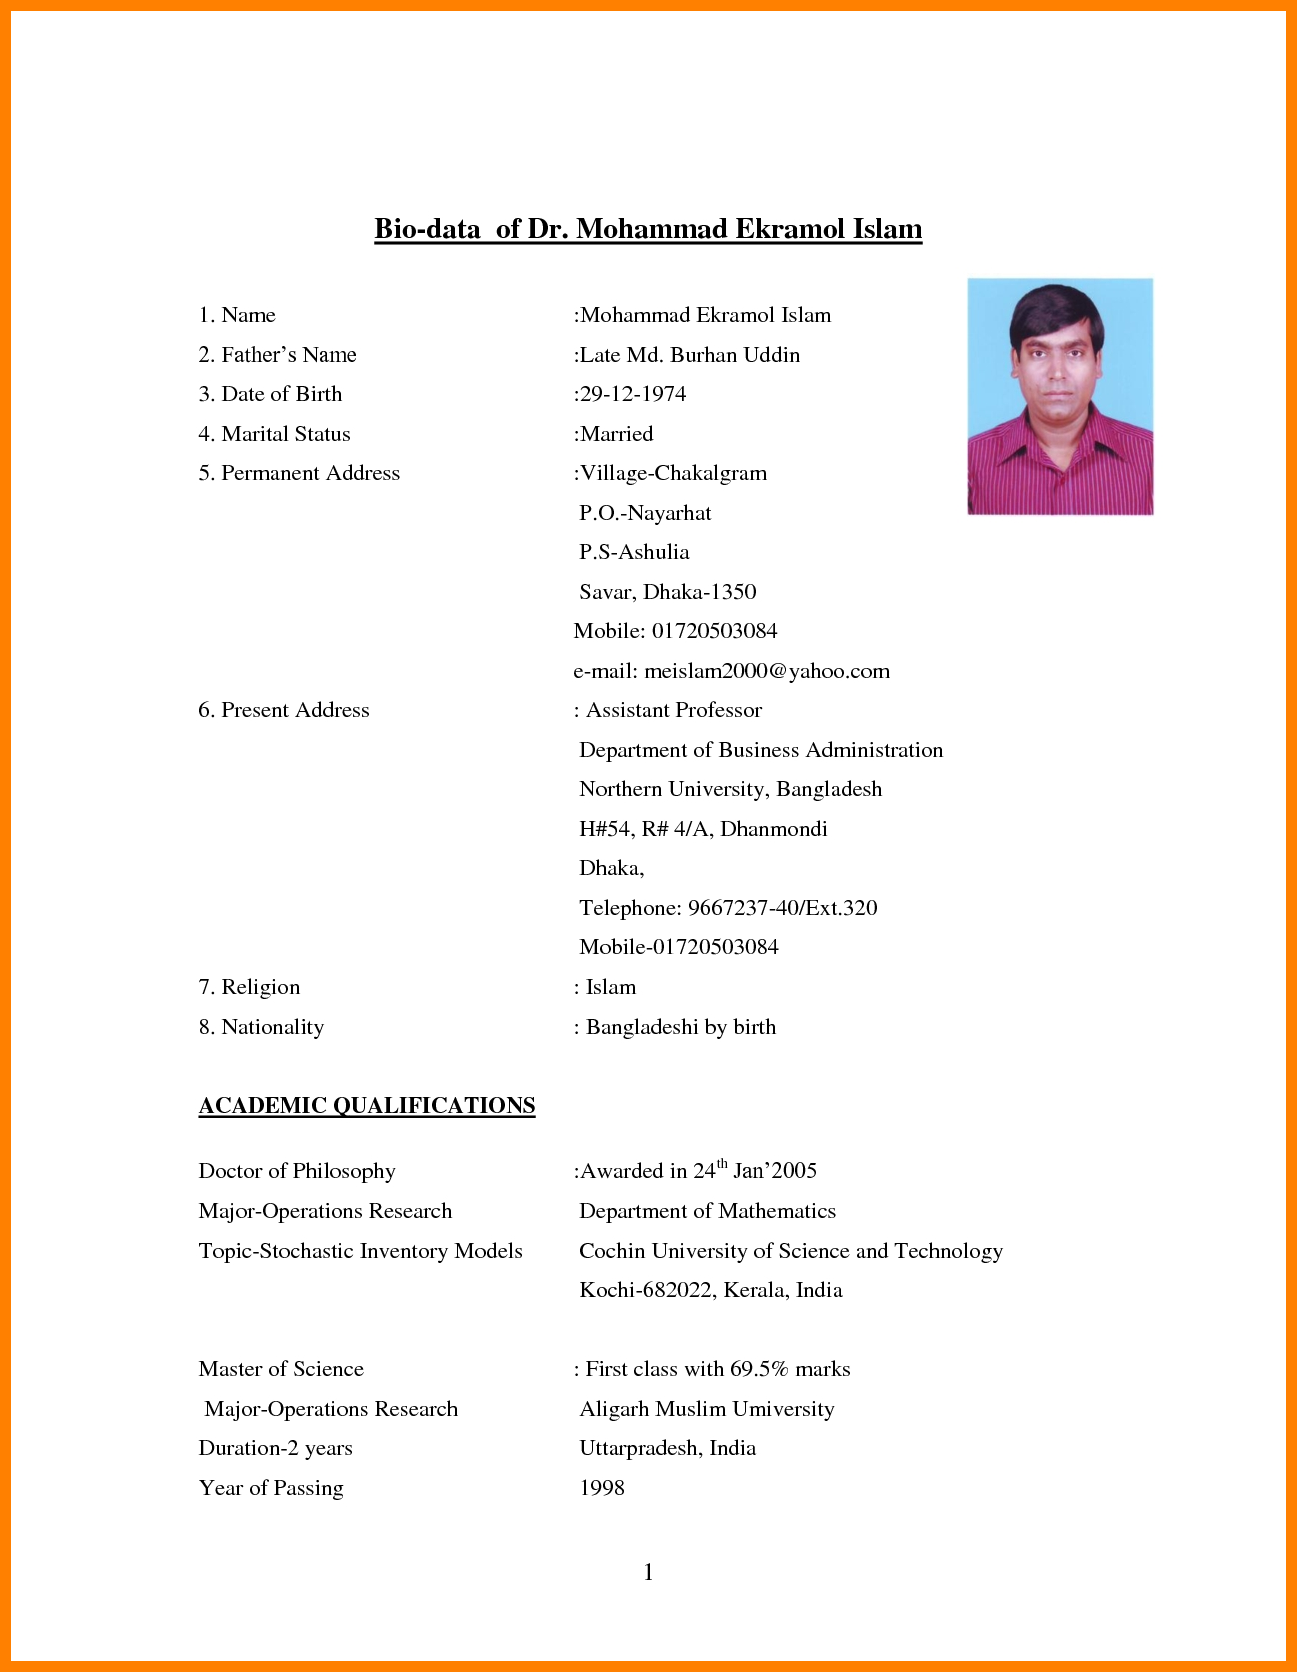 Hybrid Resume Examples Mesmerizing 5 Biodata Format For Job Word  Sephora Resume  Kp  Pinterest